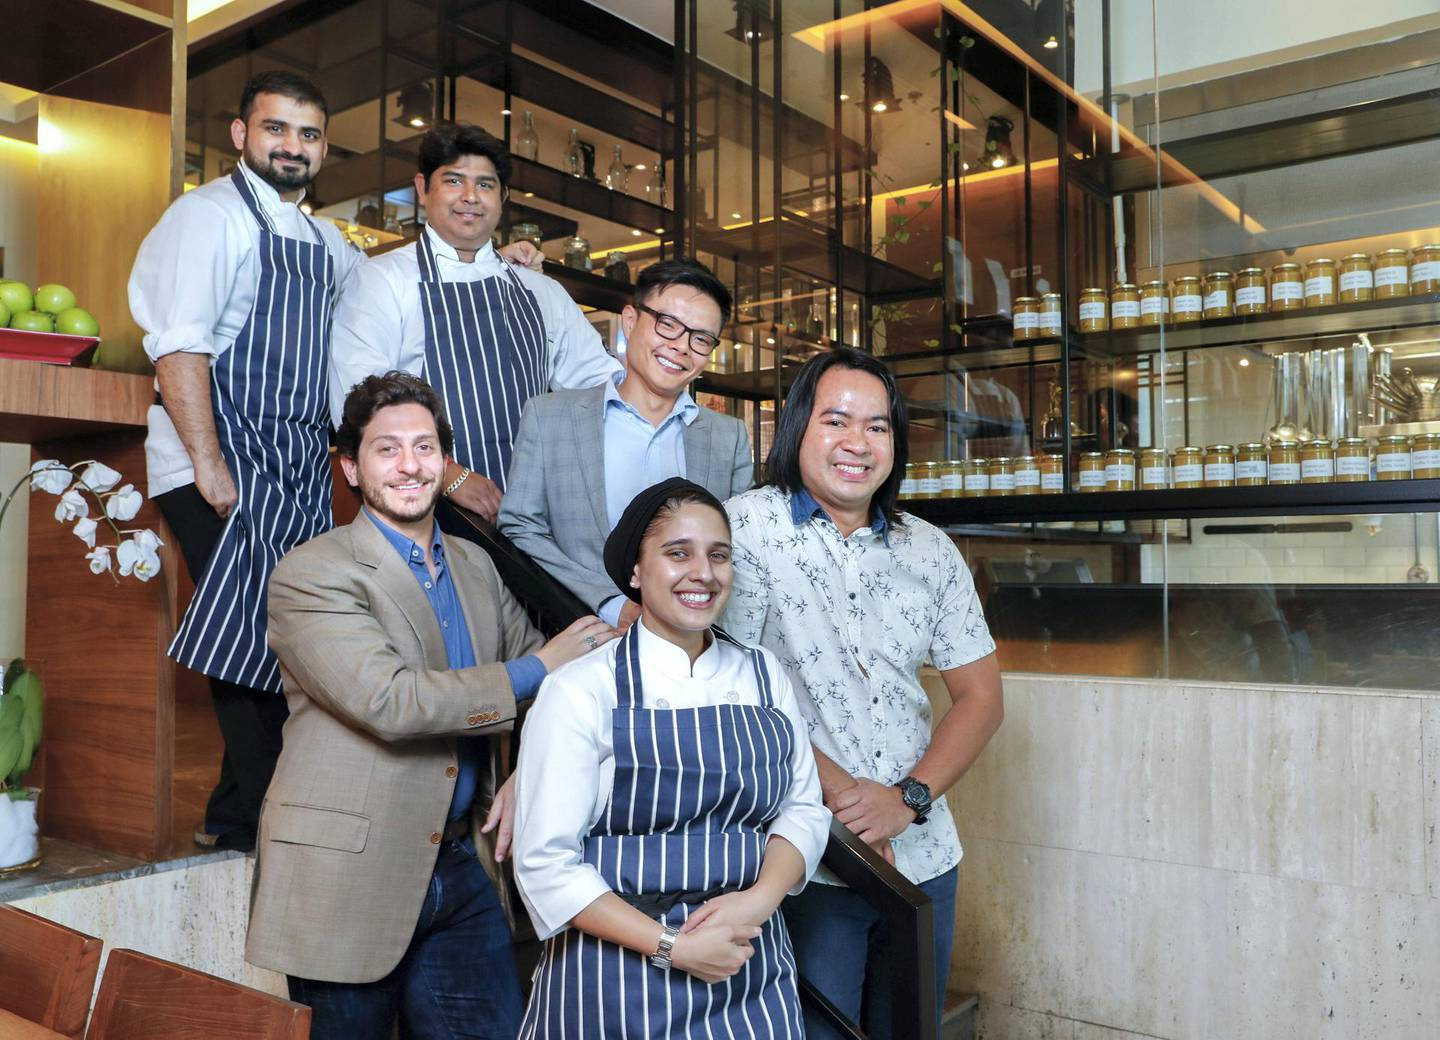 Dubai, UAE, February 19,2018.  Andre (the boss) of Baker & Spice café Al Manzil Mall Dubai  and some of his team for a feature story.  (L-R) from back row: Manish Gajara, Sumanta Roy, Adrian Chow and Deejay Leon, (front) Andre Gerschel and Aaliyah Randeree.Victor Besa / The NationalWKReporter:  Kevin Hacket